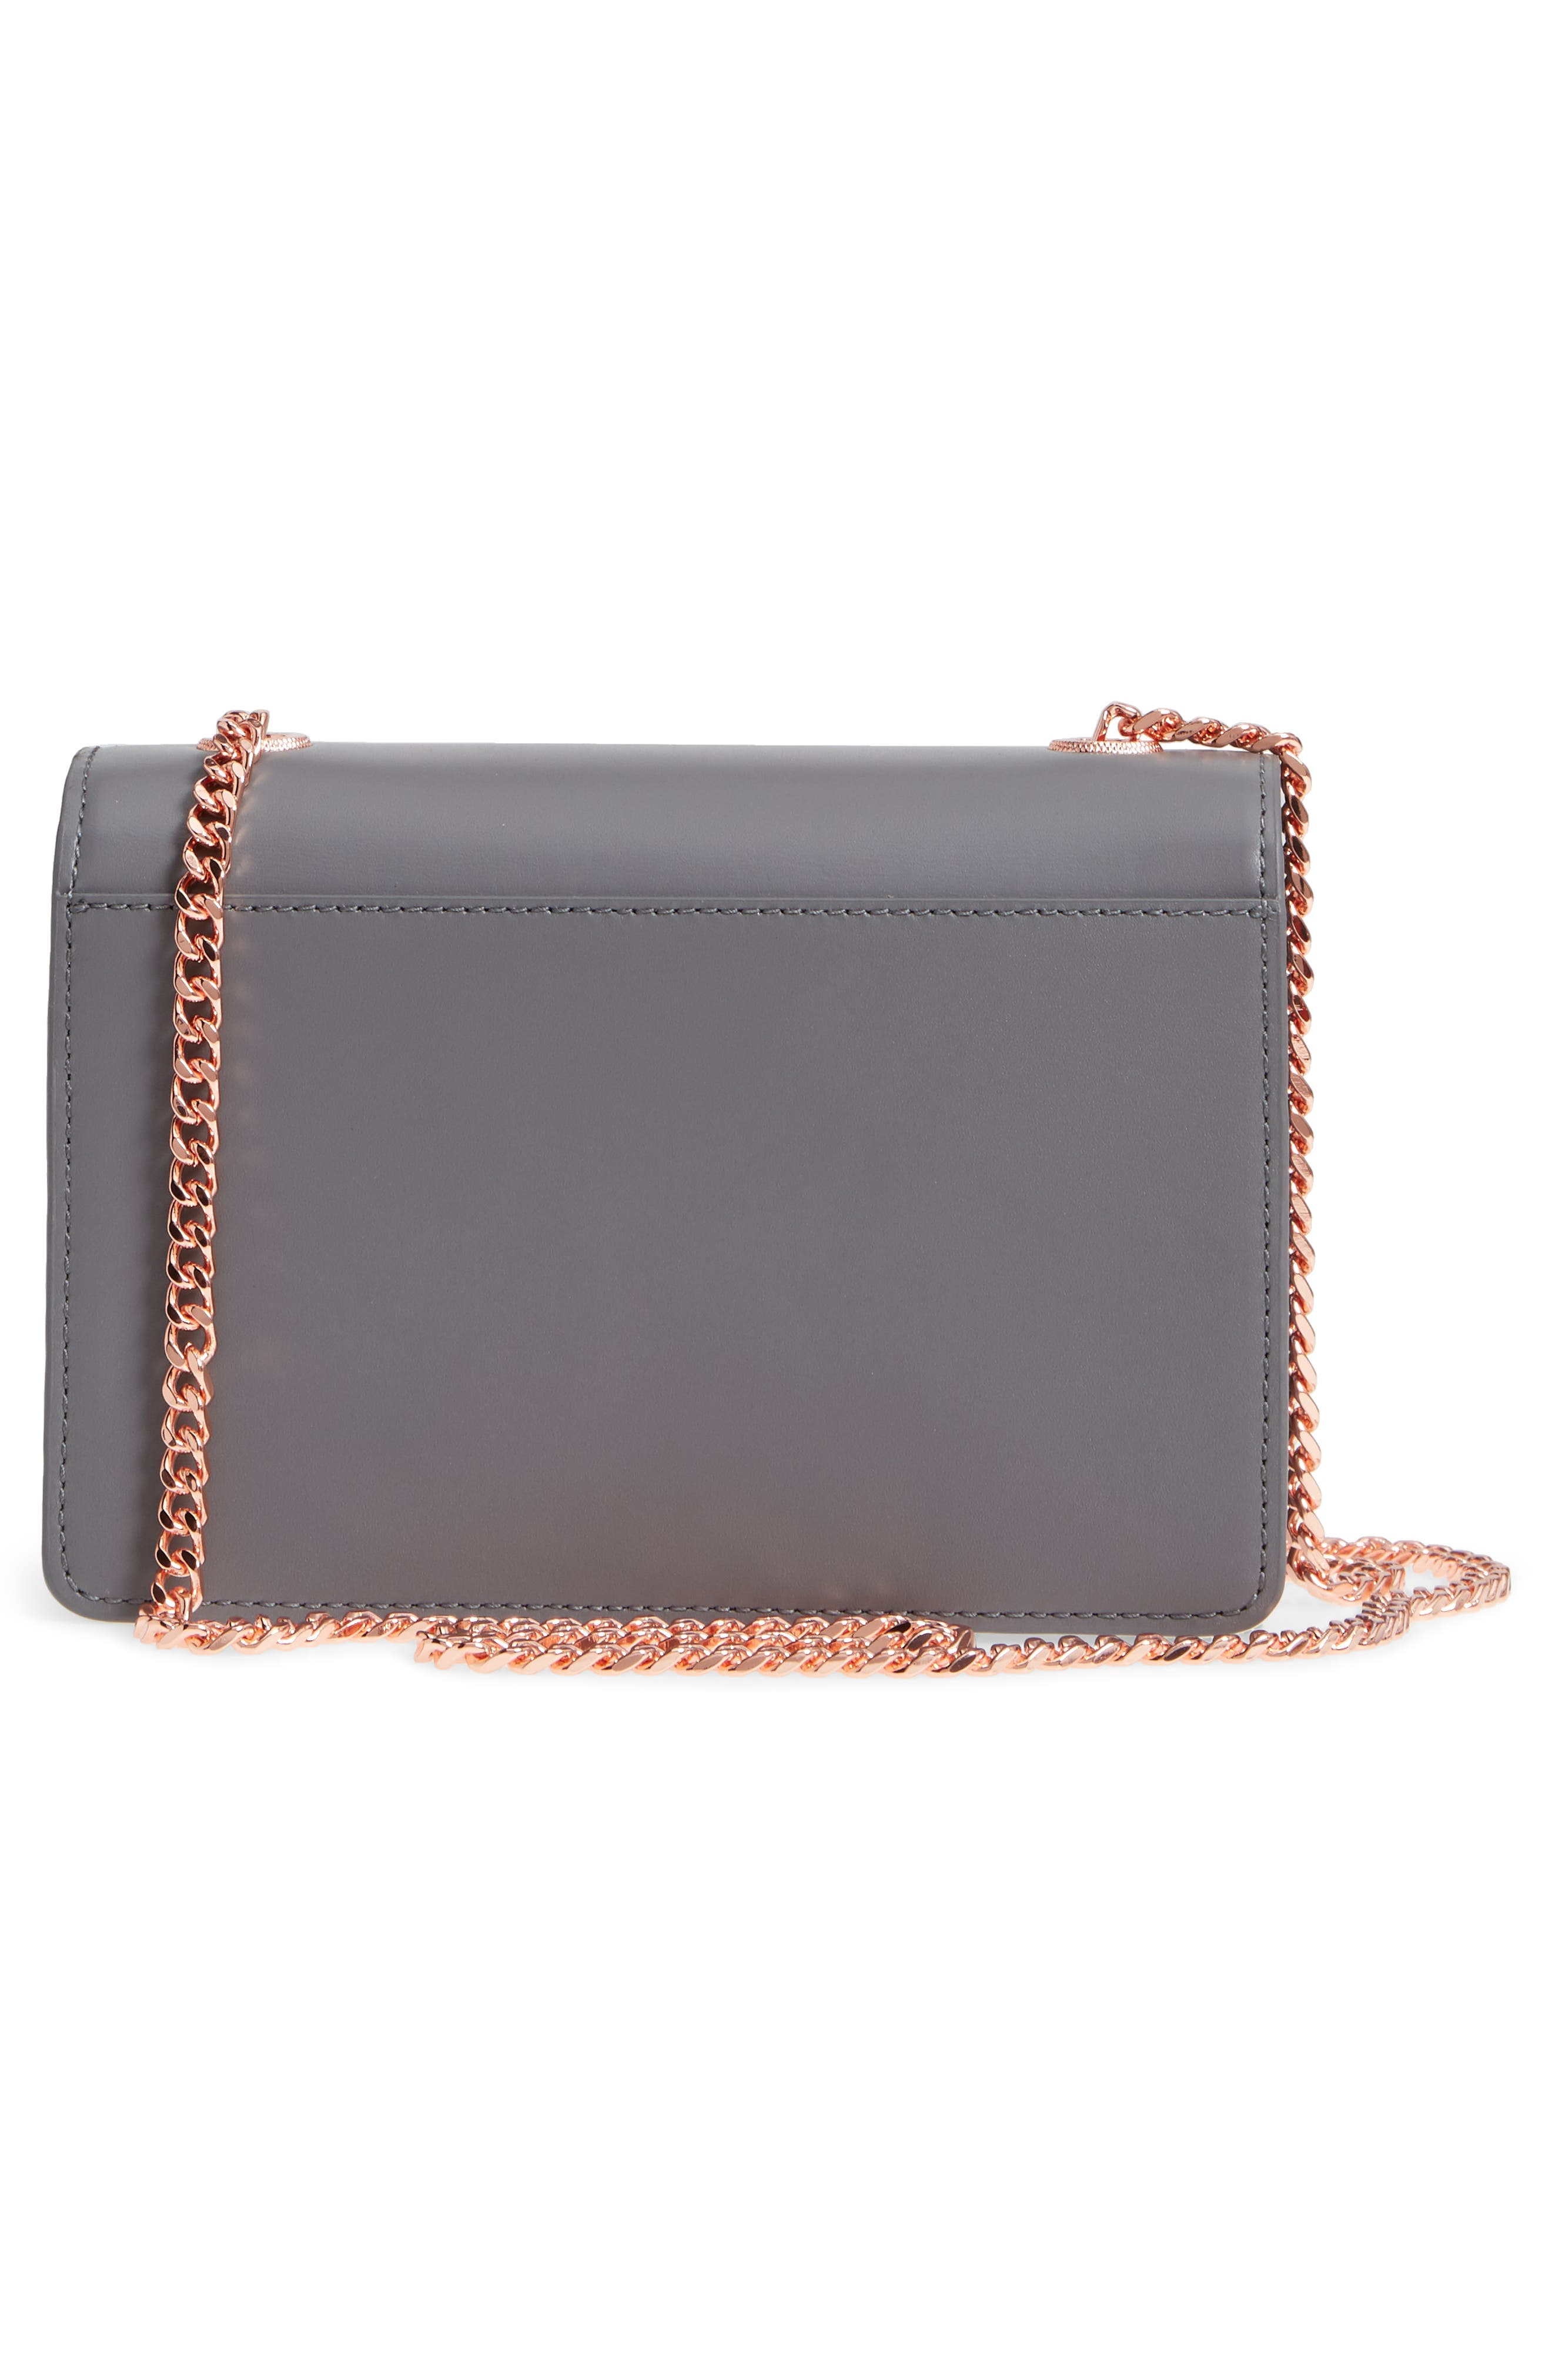 Earie Leather Crossbody Bag,                             Alternate thumbnail 3, color,                             020